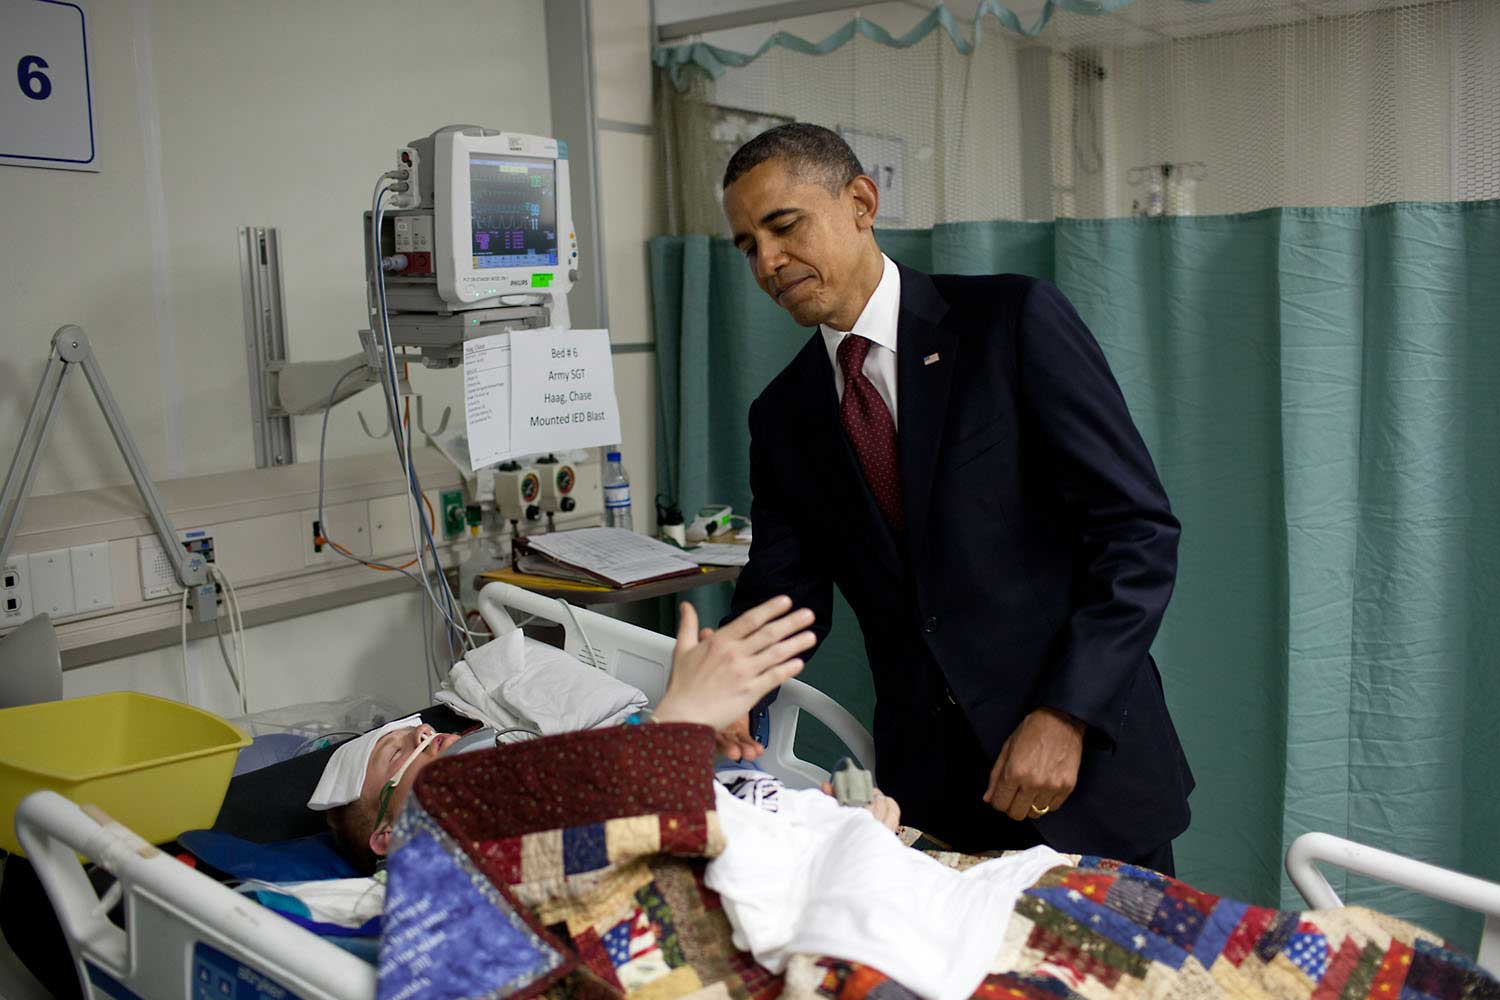 This was one of the most poignant moments of the President's first term. He was visiting wounded warriors in the intensive care unit ICU at Bagram Air Field, Afghanistan, May 1, 2012. He had just presented a Purple Heart to Sgt. Chase Haag, who had been injured by an IED just hours before. Sgt. Haag was covered with a blanket and it was difficult to see how badly he was injured. He was also seemingly unconscious so the President whispered in his ear so not to wake him. Just then, there was a rustling under the blanket and Sgt. Haag, eyes still closed, reached his hand out to shake hands with the President.